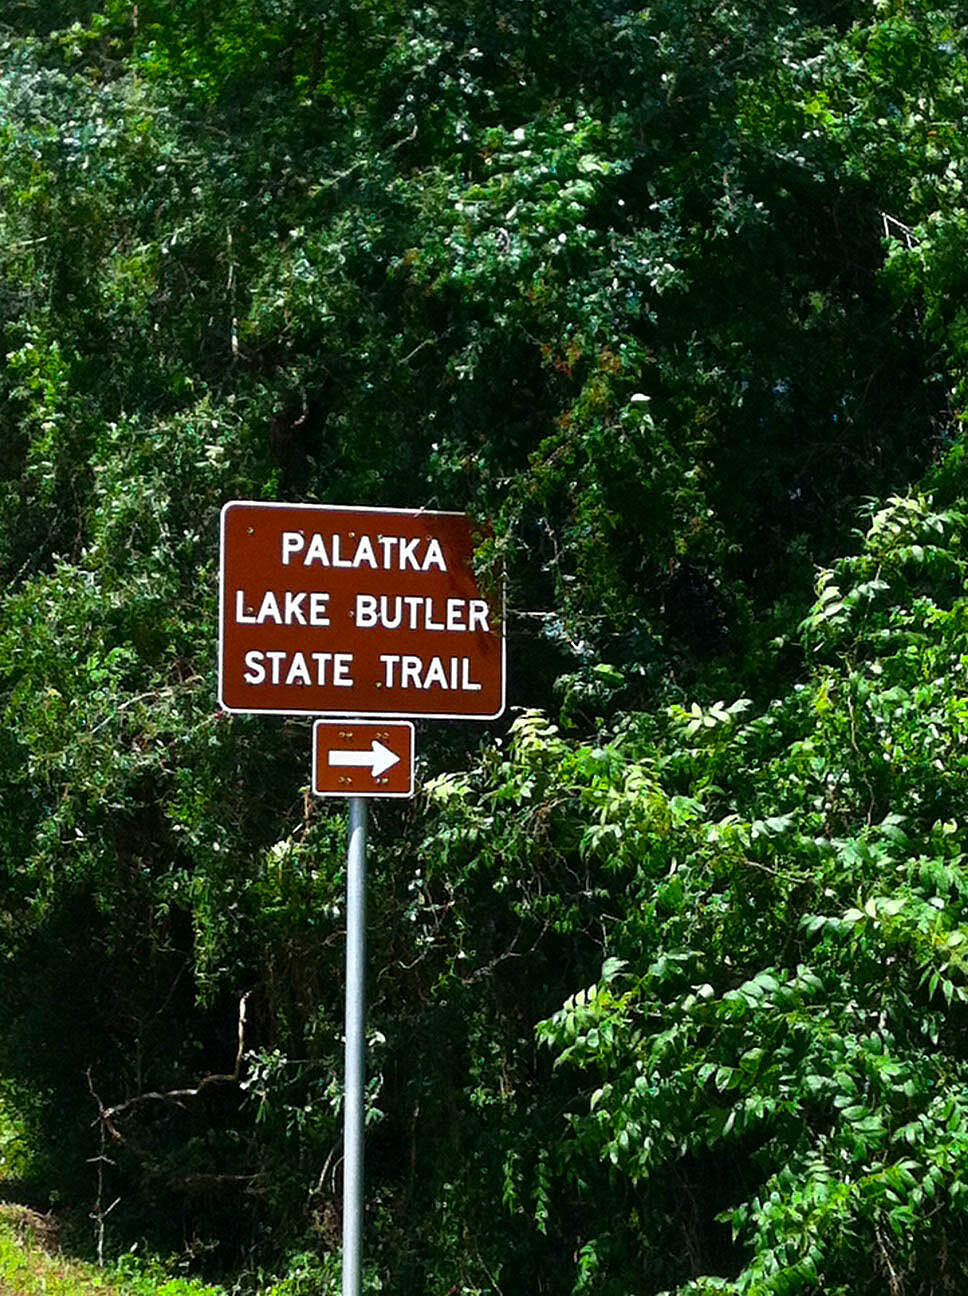 Palatka-Lake Butler State Trail Palatka-Lake Butler Trail the sign about 4 miles outside of Lake Butler where it currently ends. One day it will connect with the Palatka side.